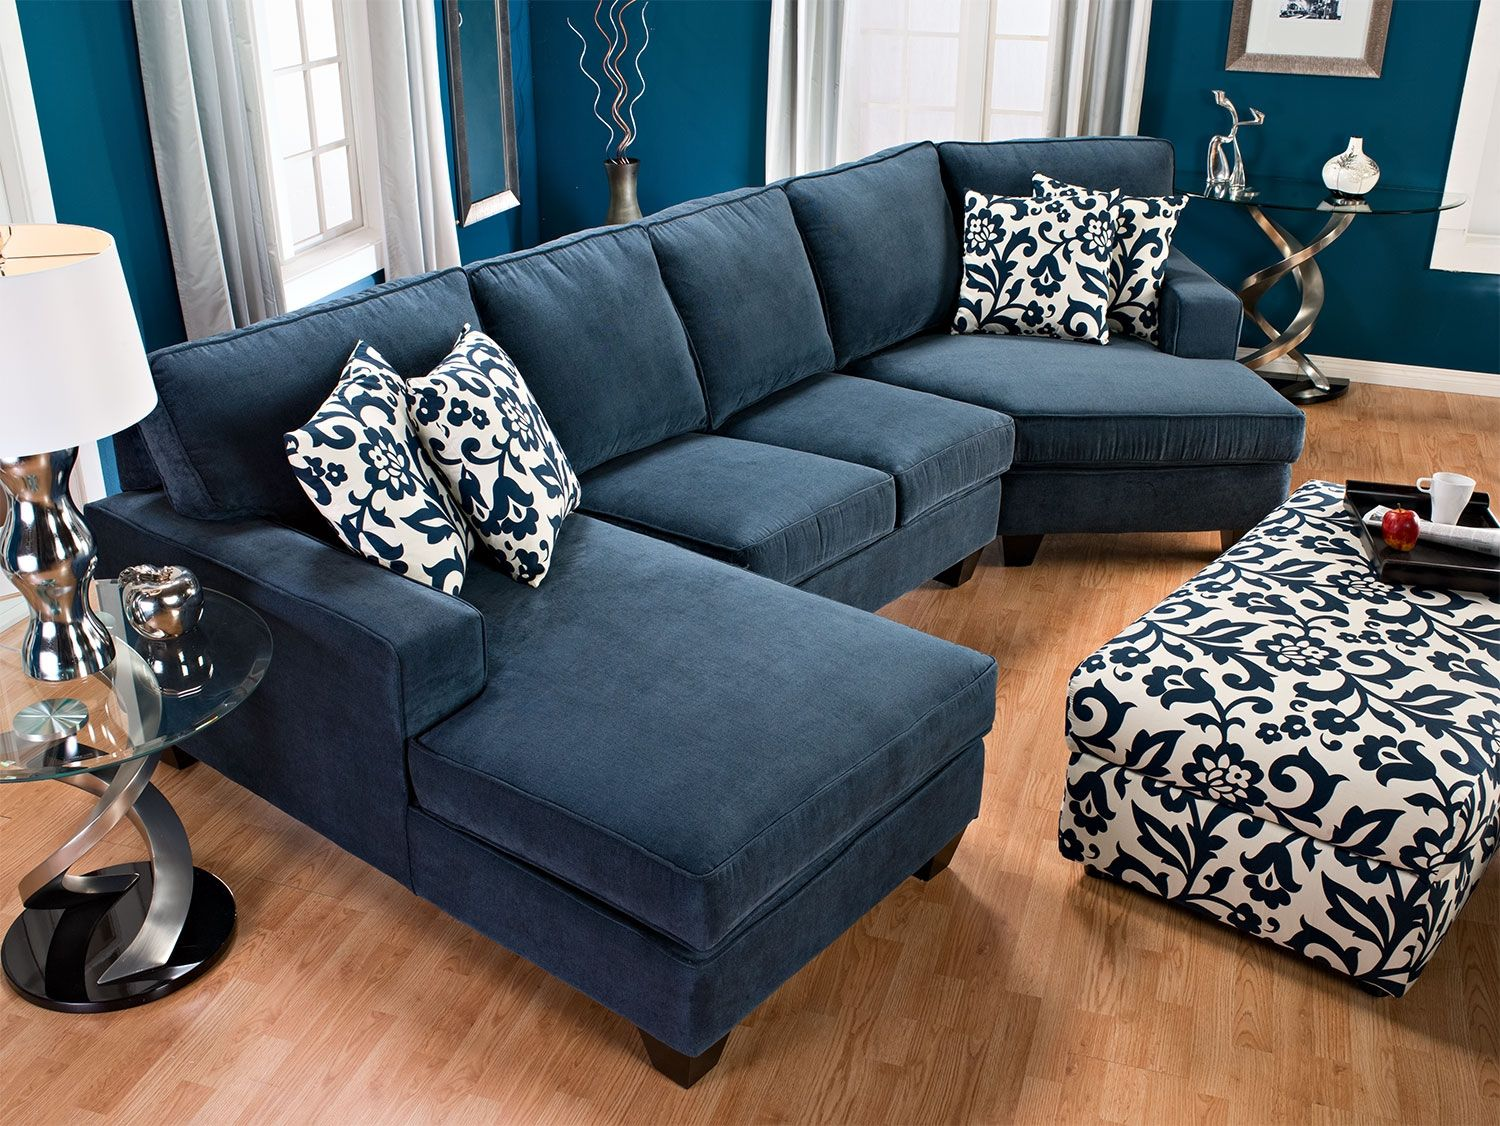 living room furniture dax chenille sectional with rightfacing cuddler indigo the brick s